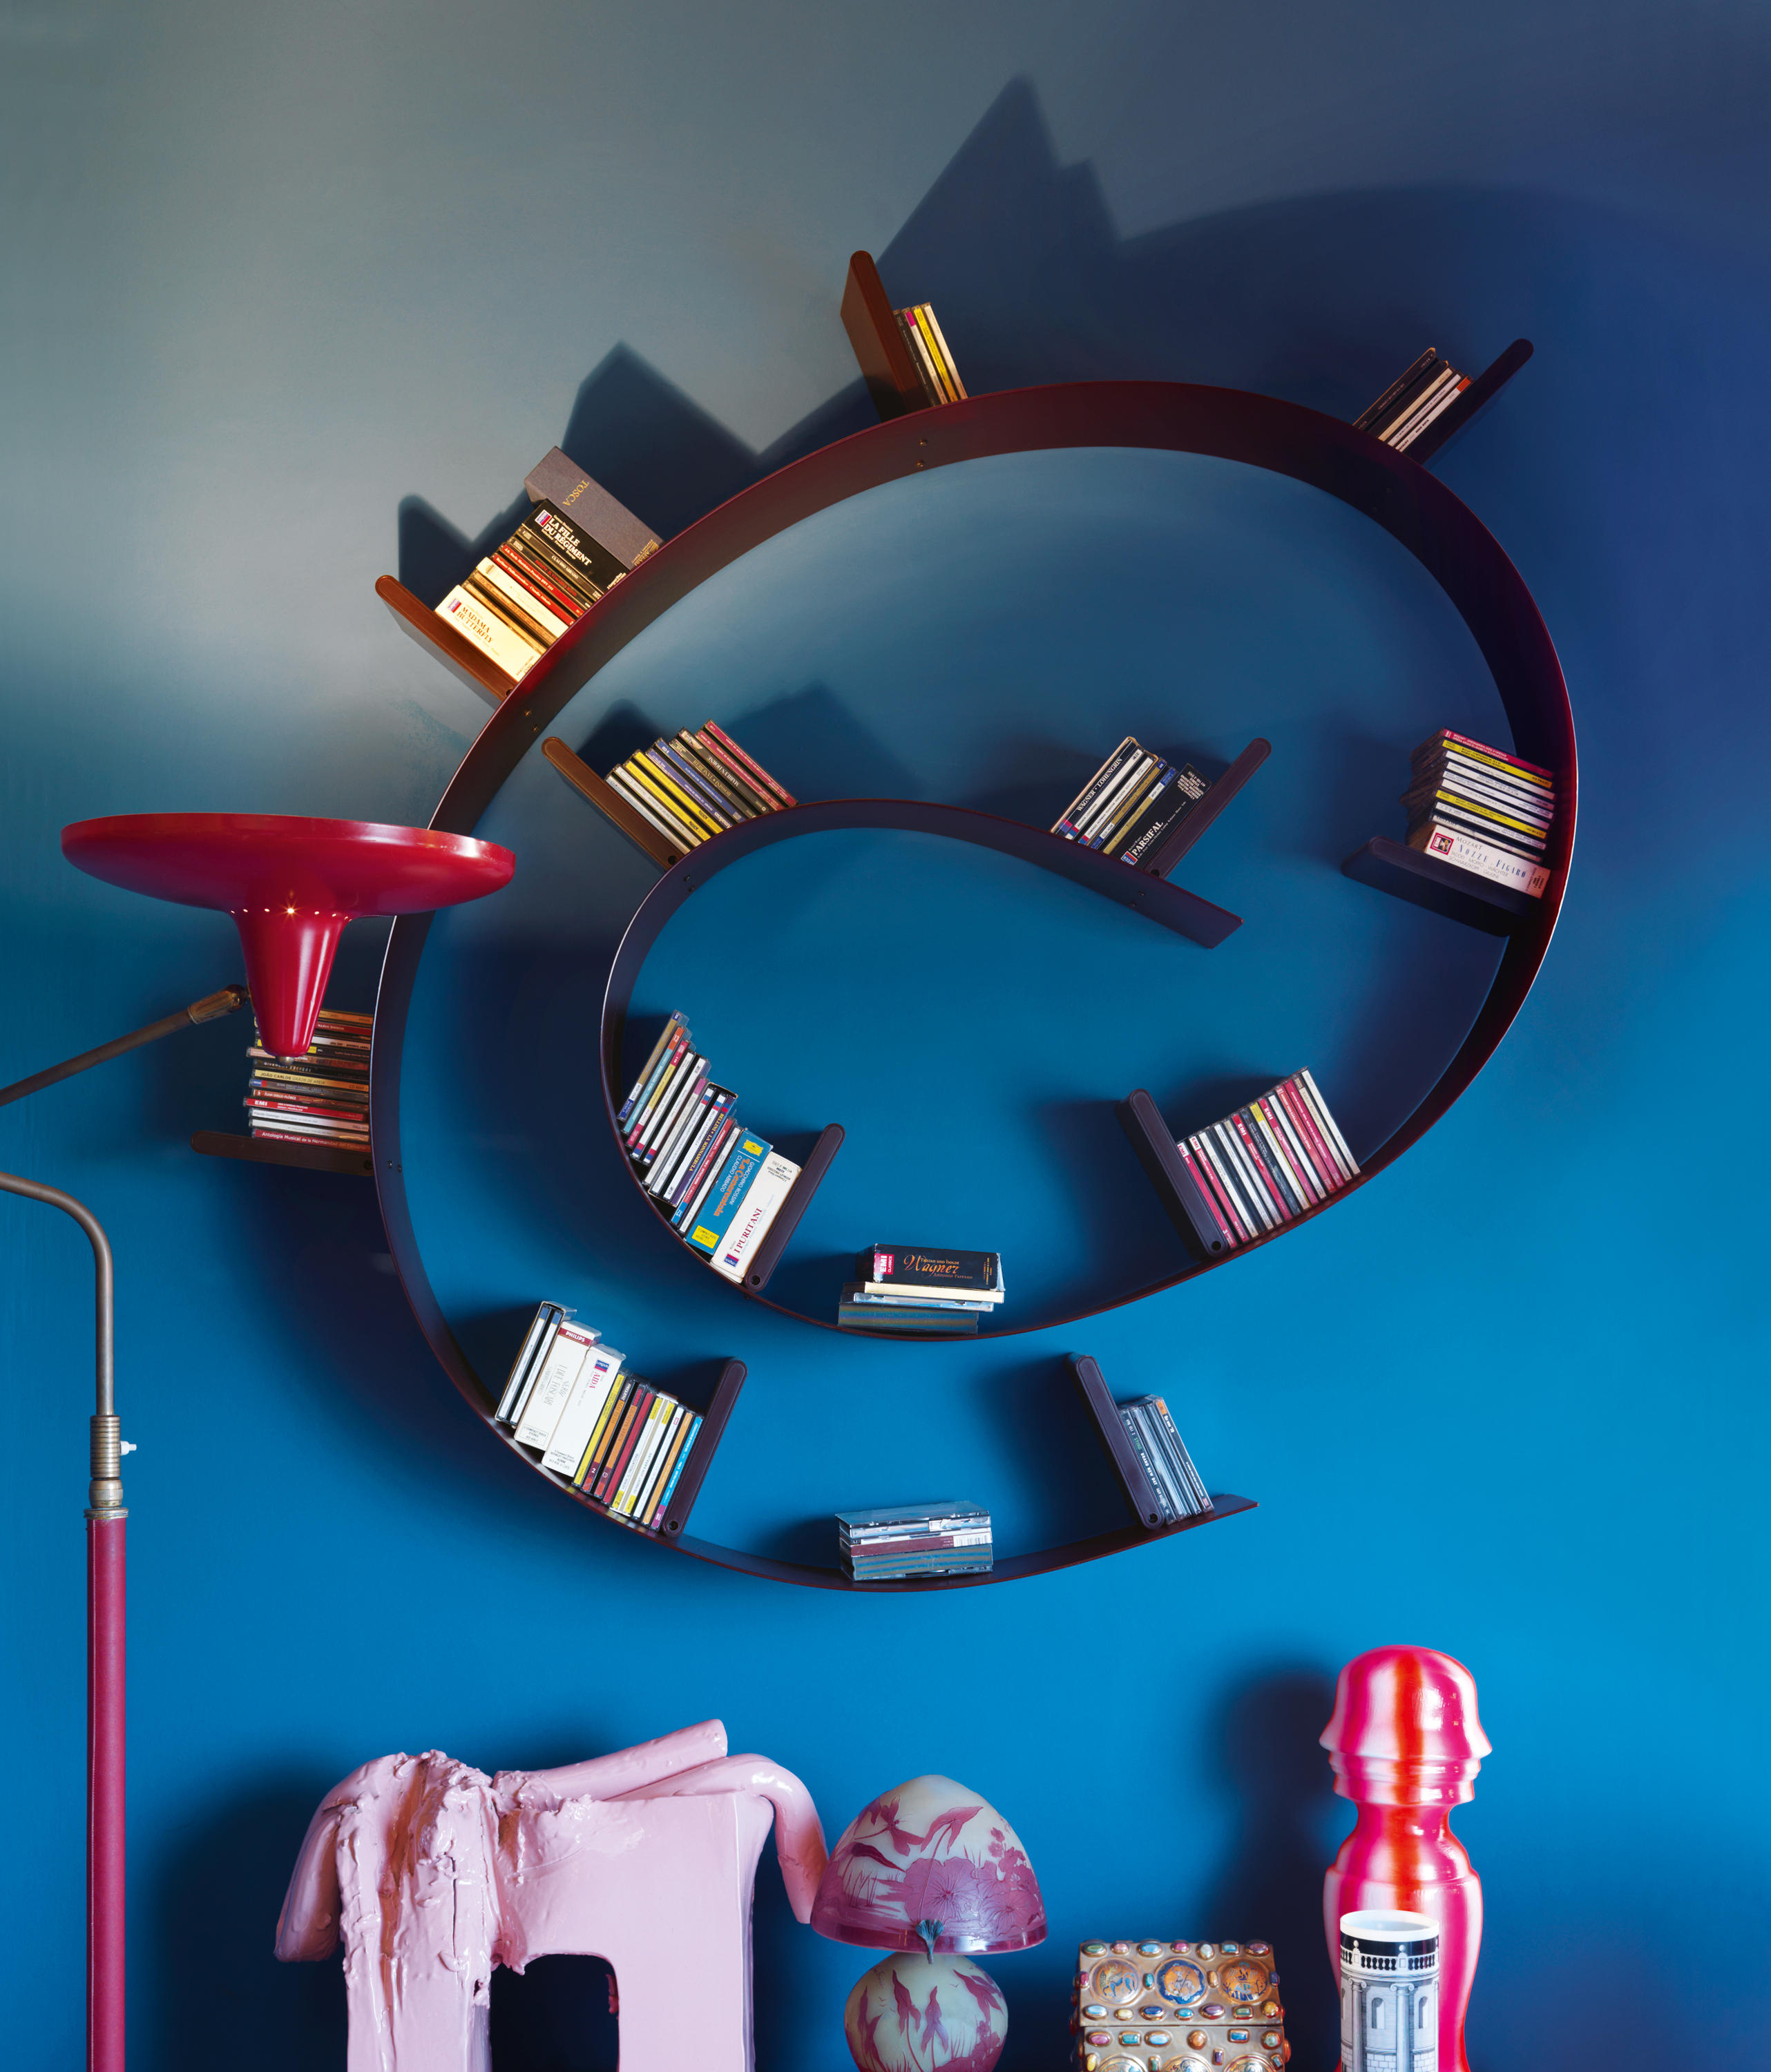 bookworm  shelving from kartell  architonic - bookworm by kartell